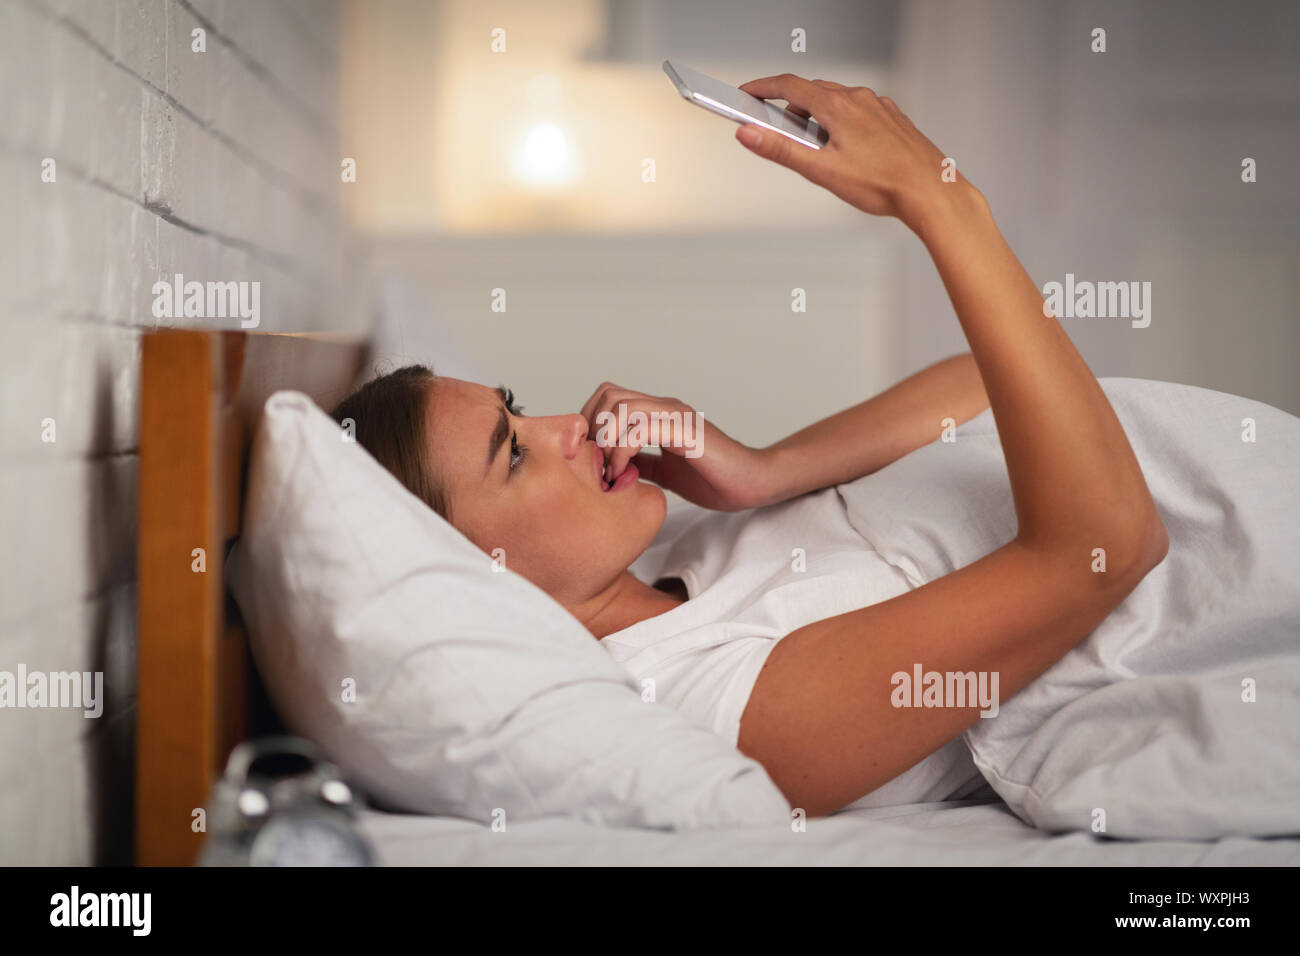 Scared Girl Holding Smartphone Lying In Bed At Home Stock Photo